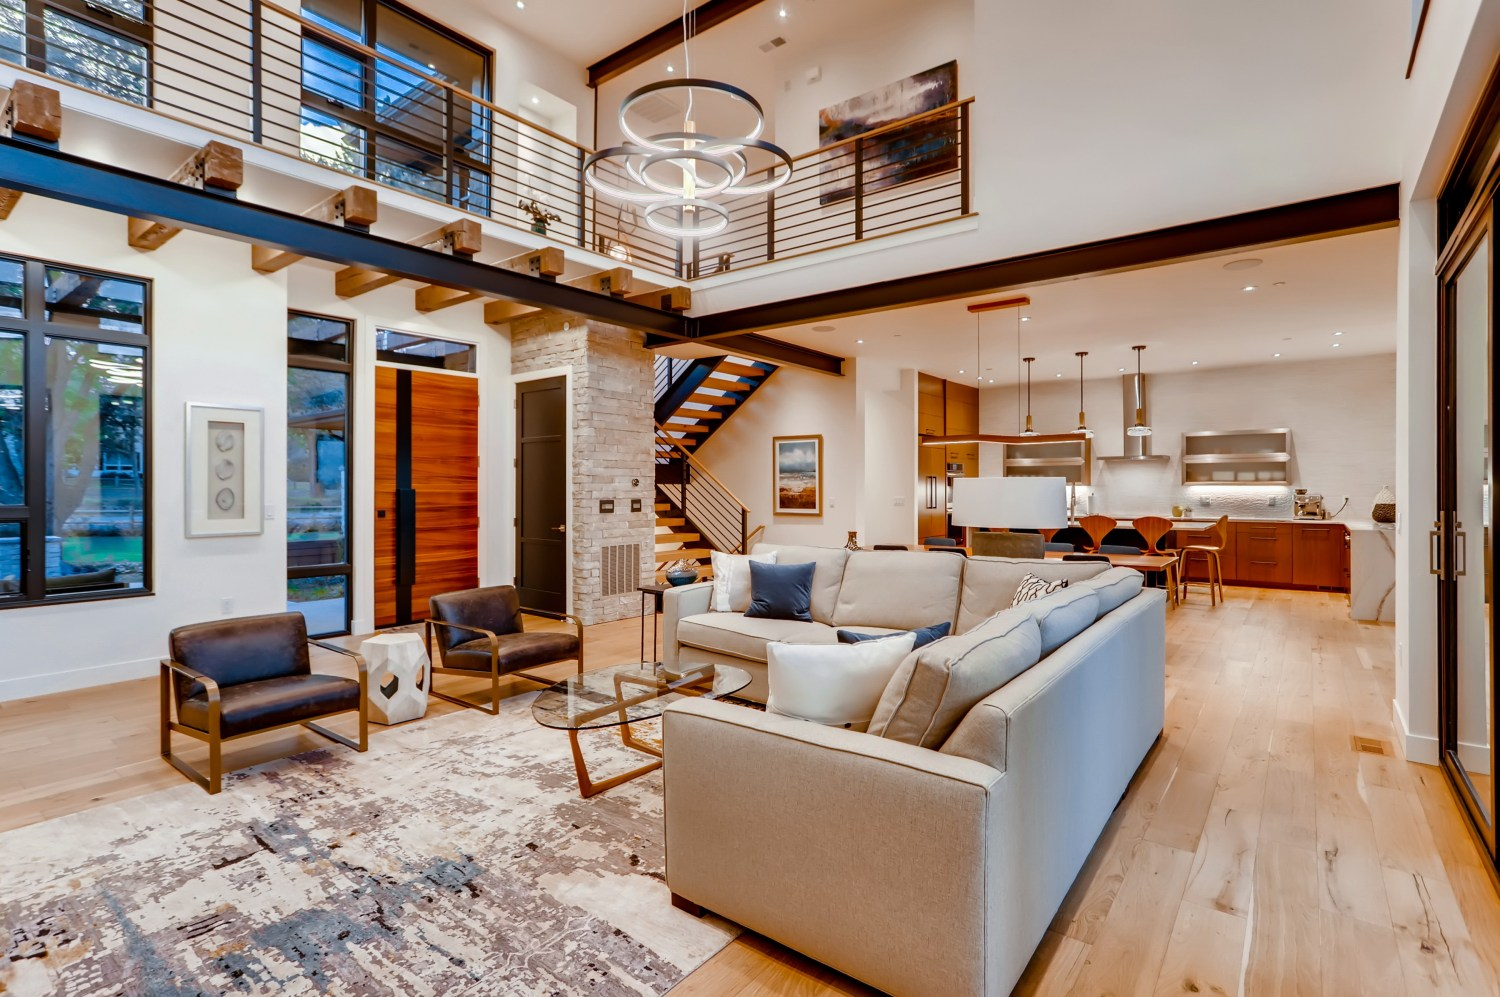 Great room with connecting bridge above and Kitchen beyond.